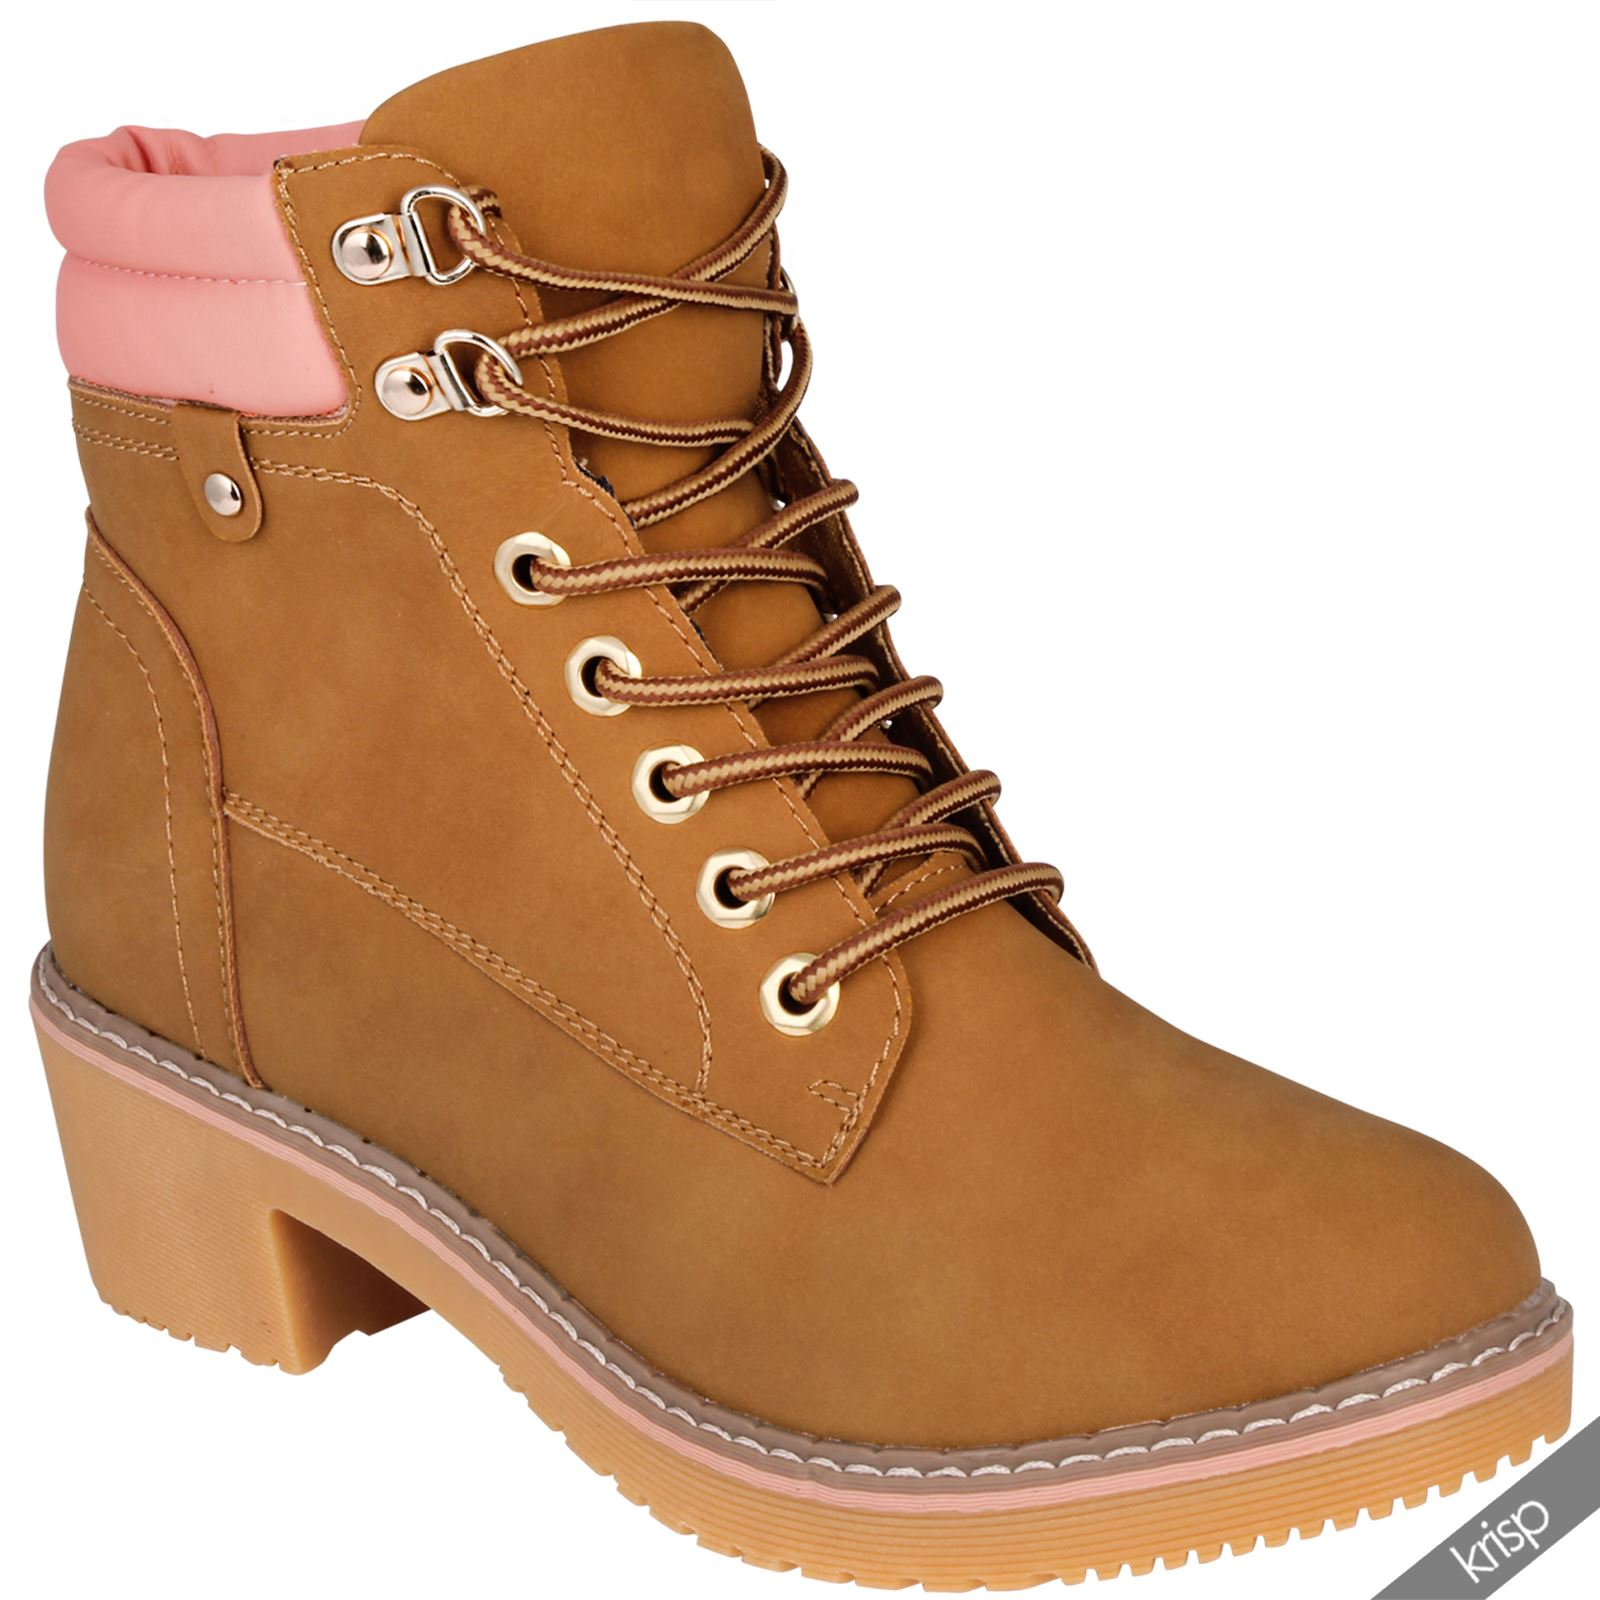 New Fashion Combat Boots For Women - Boot Yc